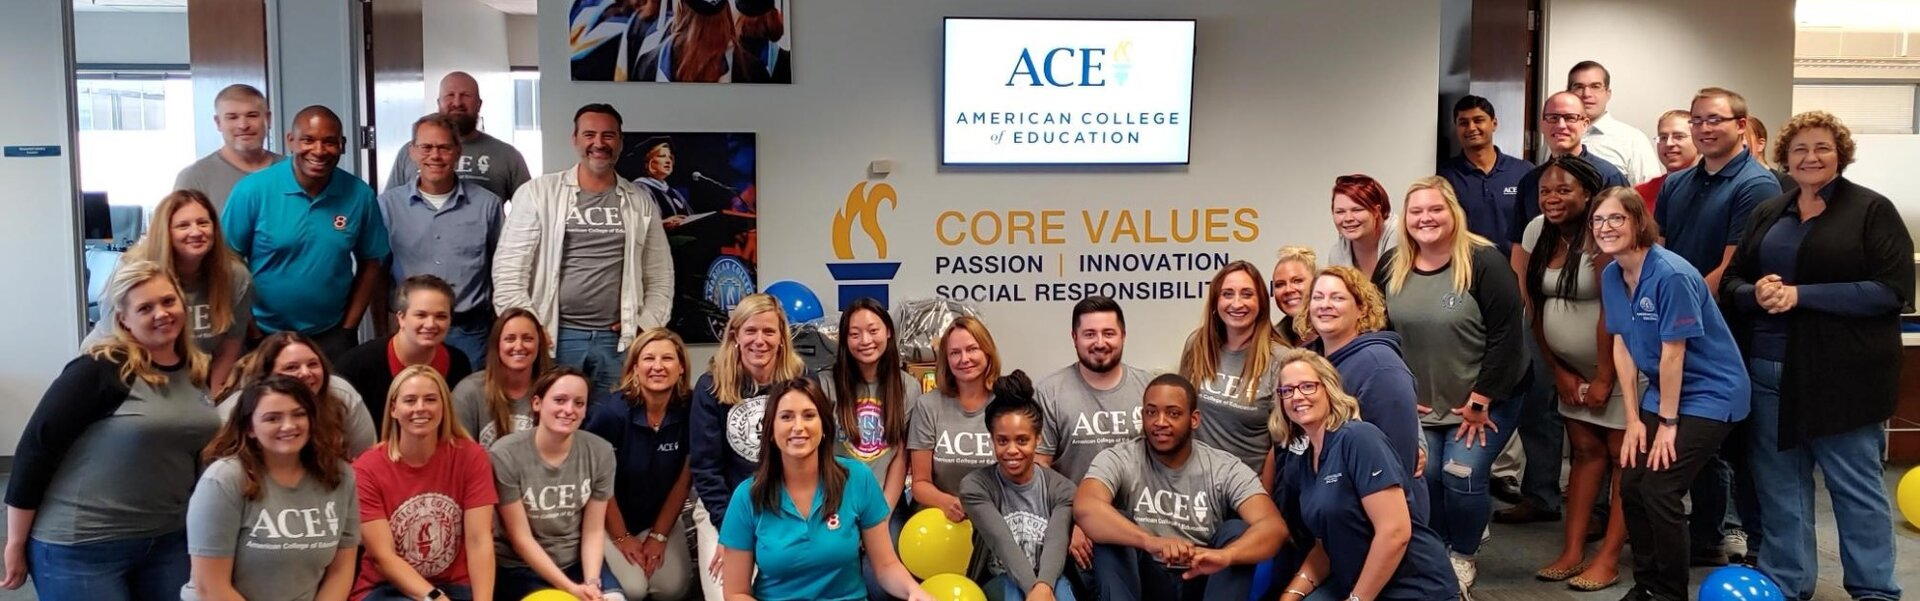 Is American College of Education For Profit?